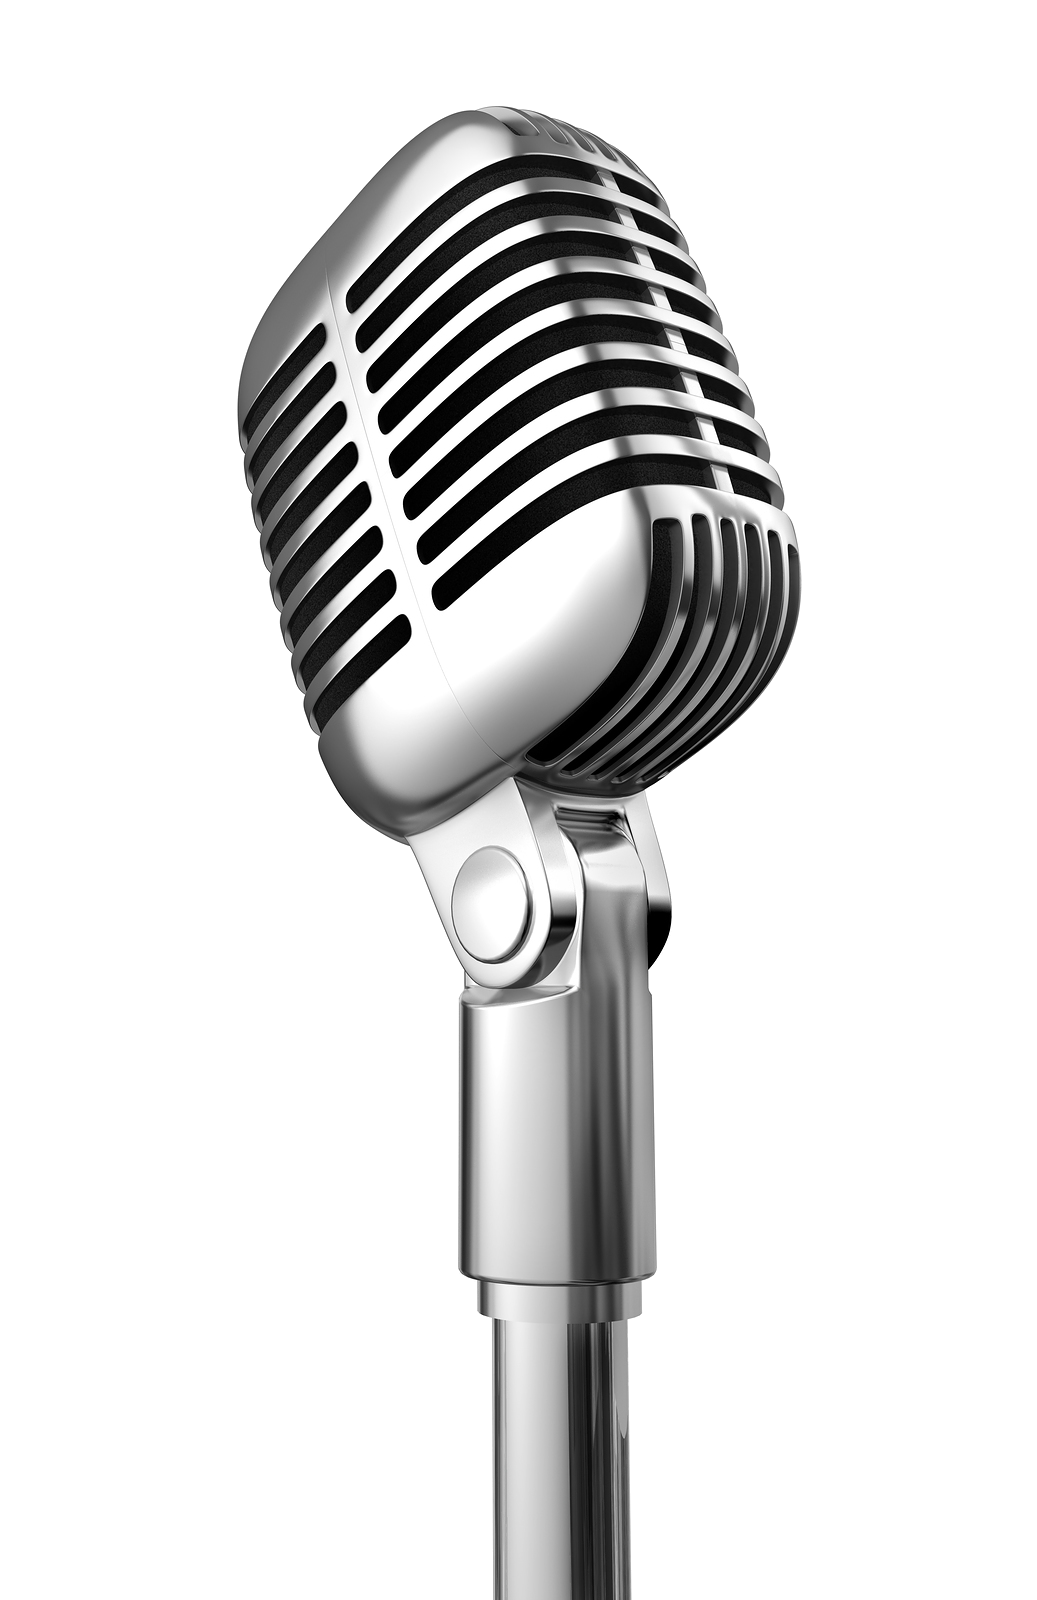 Transparent images all png. Microphone clipart poetry